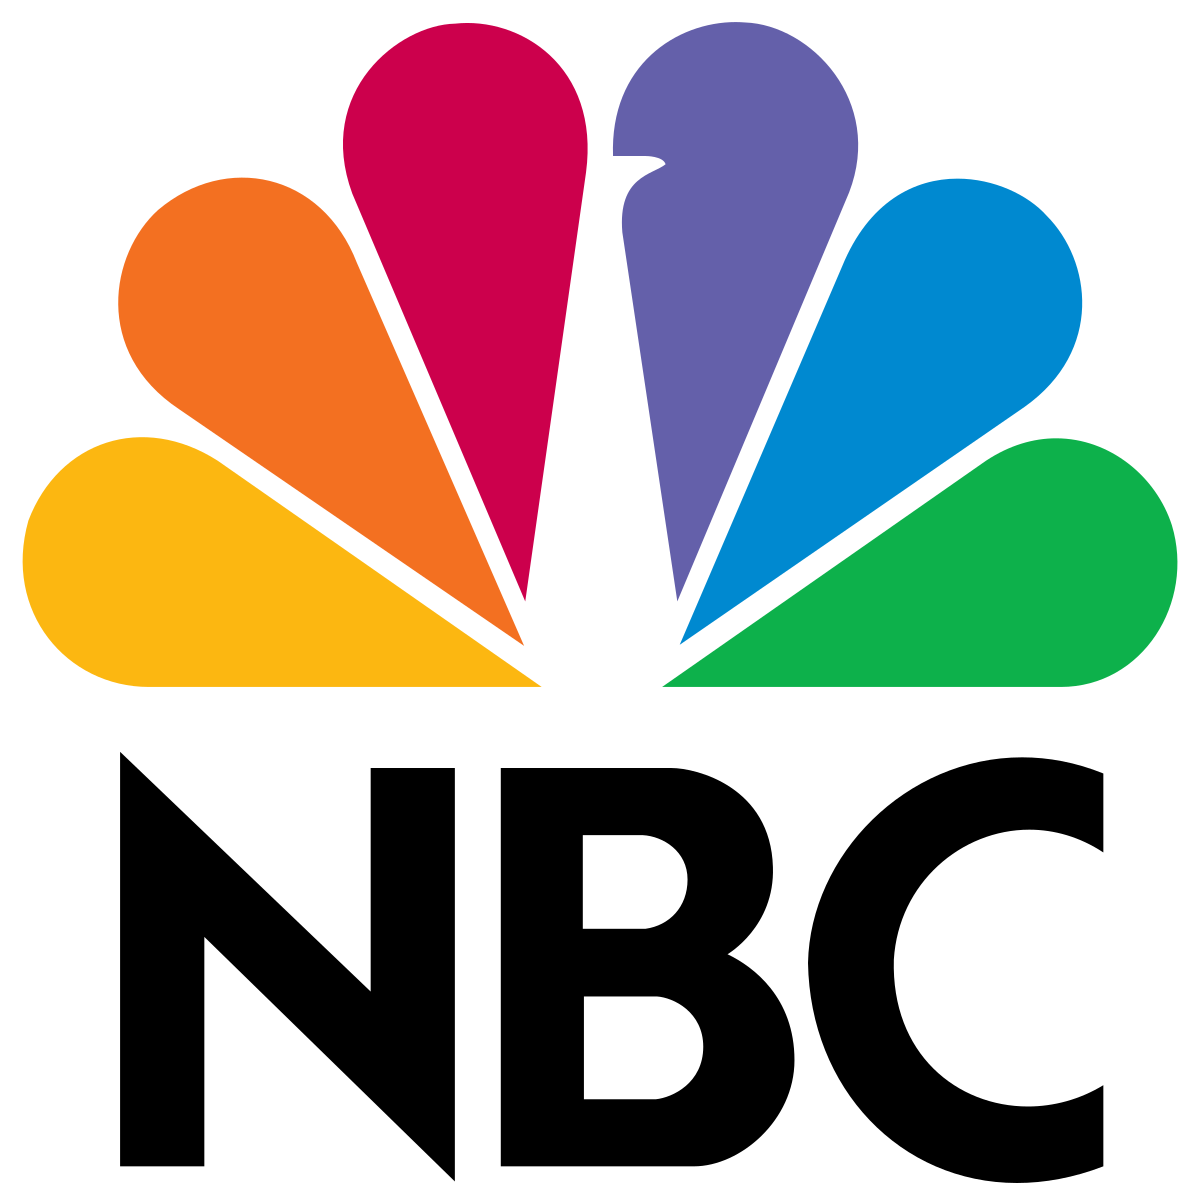 News clipart tv broadcasting. Nbc europe wikipedia